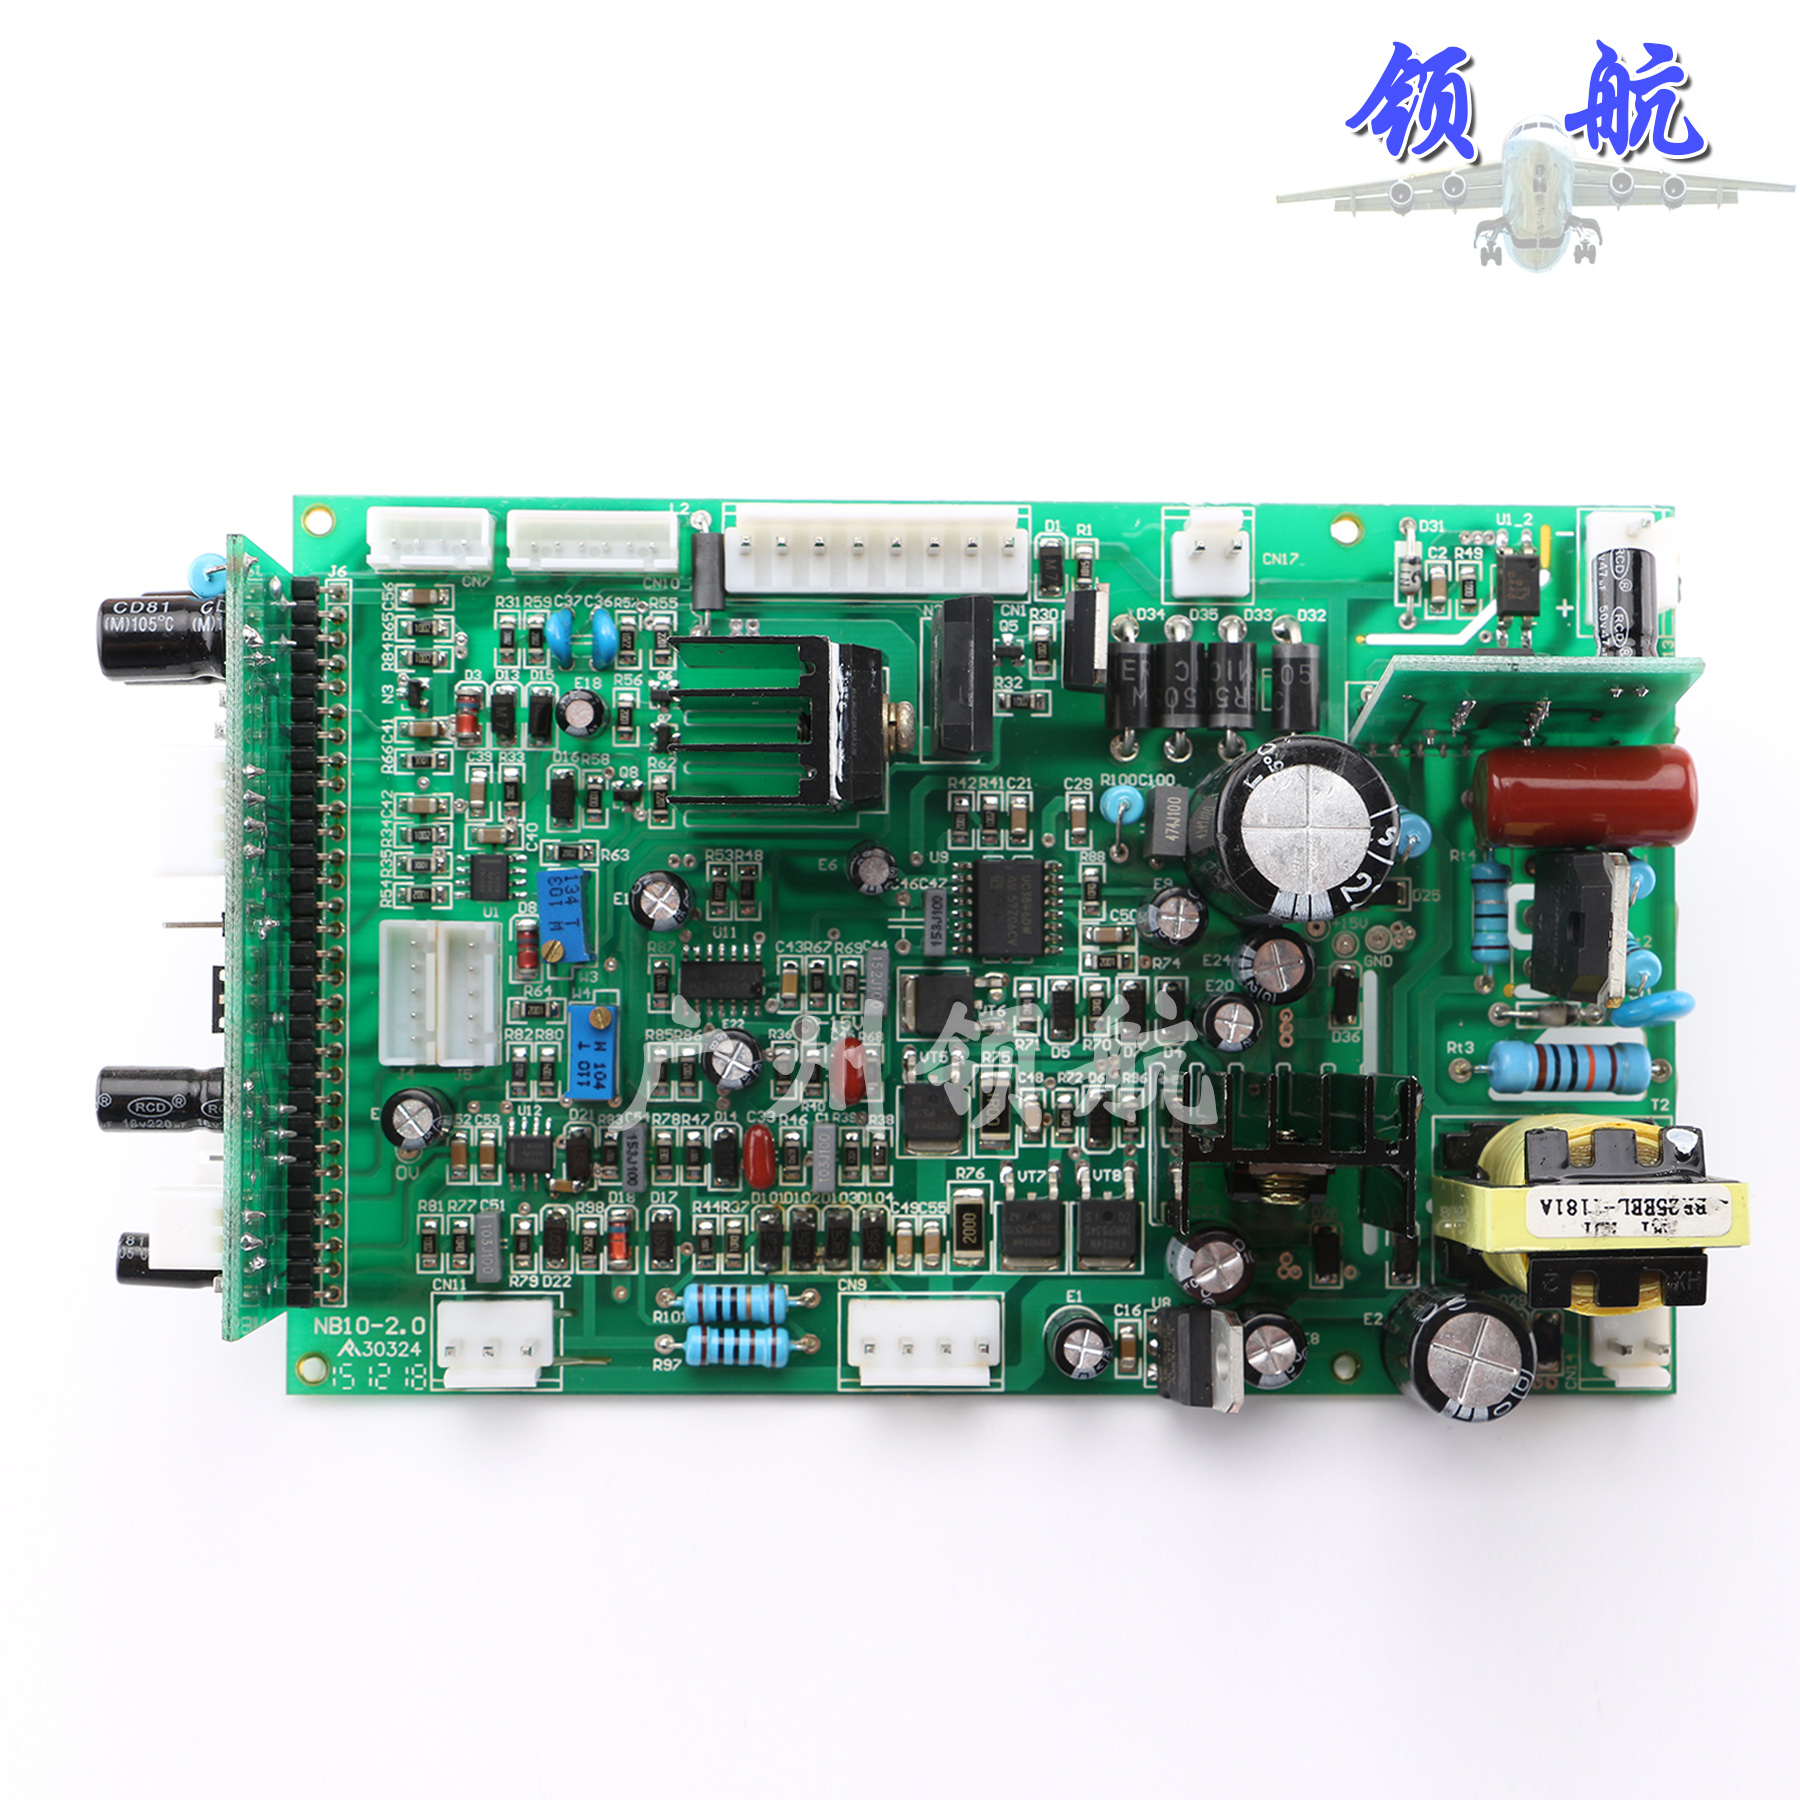 Home Appliance Parts Xds110 Full Edition Xds100v3 V2 Cc2640 Cc1310 Tms320f28335 Personal Care Appliance Parts